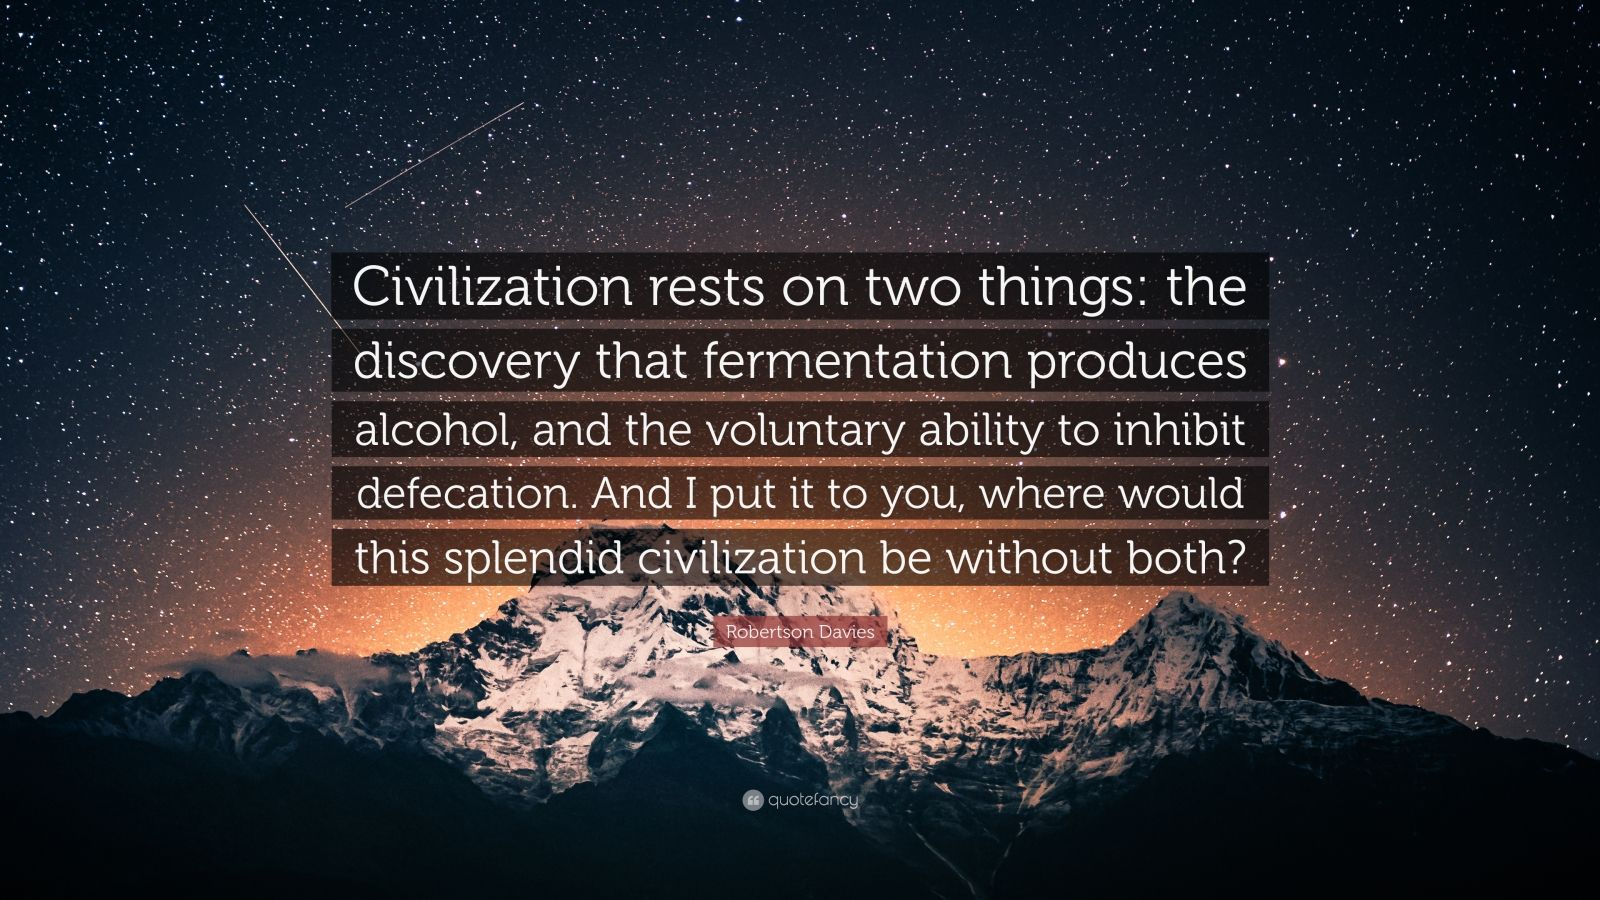 """Robertson Davies Quote: """"Civilization rests on two things: the discovery that fermentation produces alcohol, and the voluntary ability to inhibit defecation. And I put it to you, where would this splendid civilization be without both?"""""""